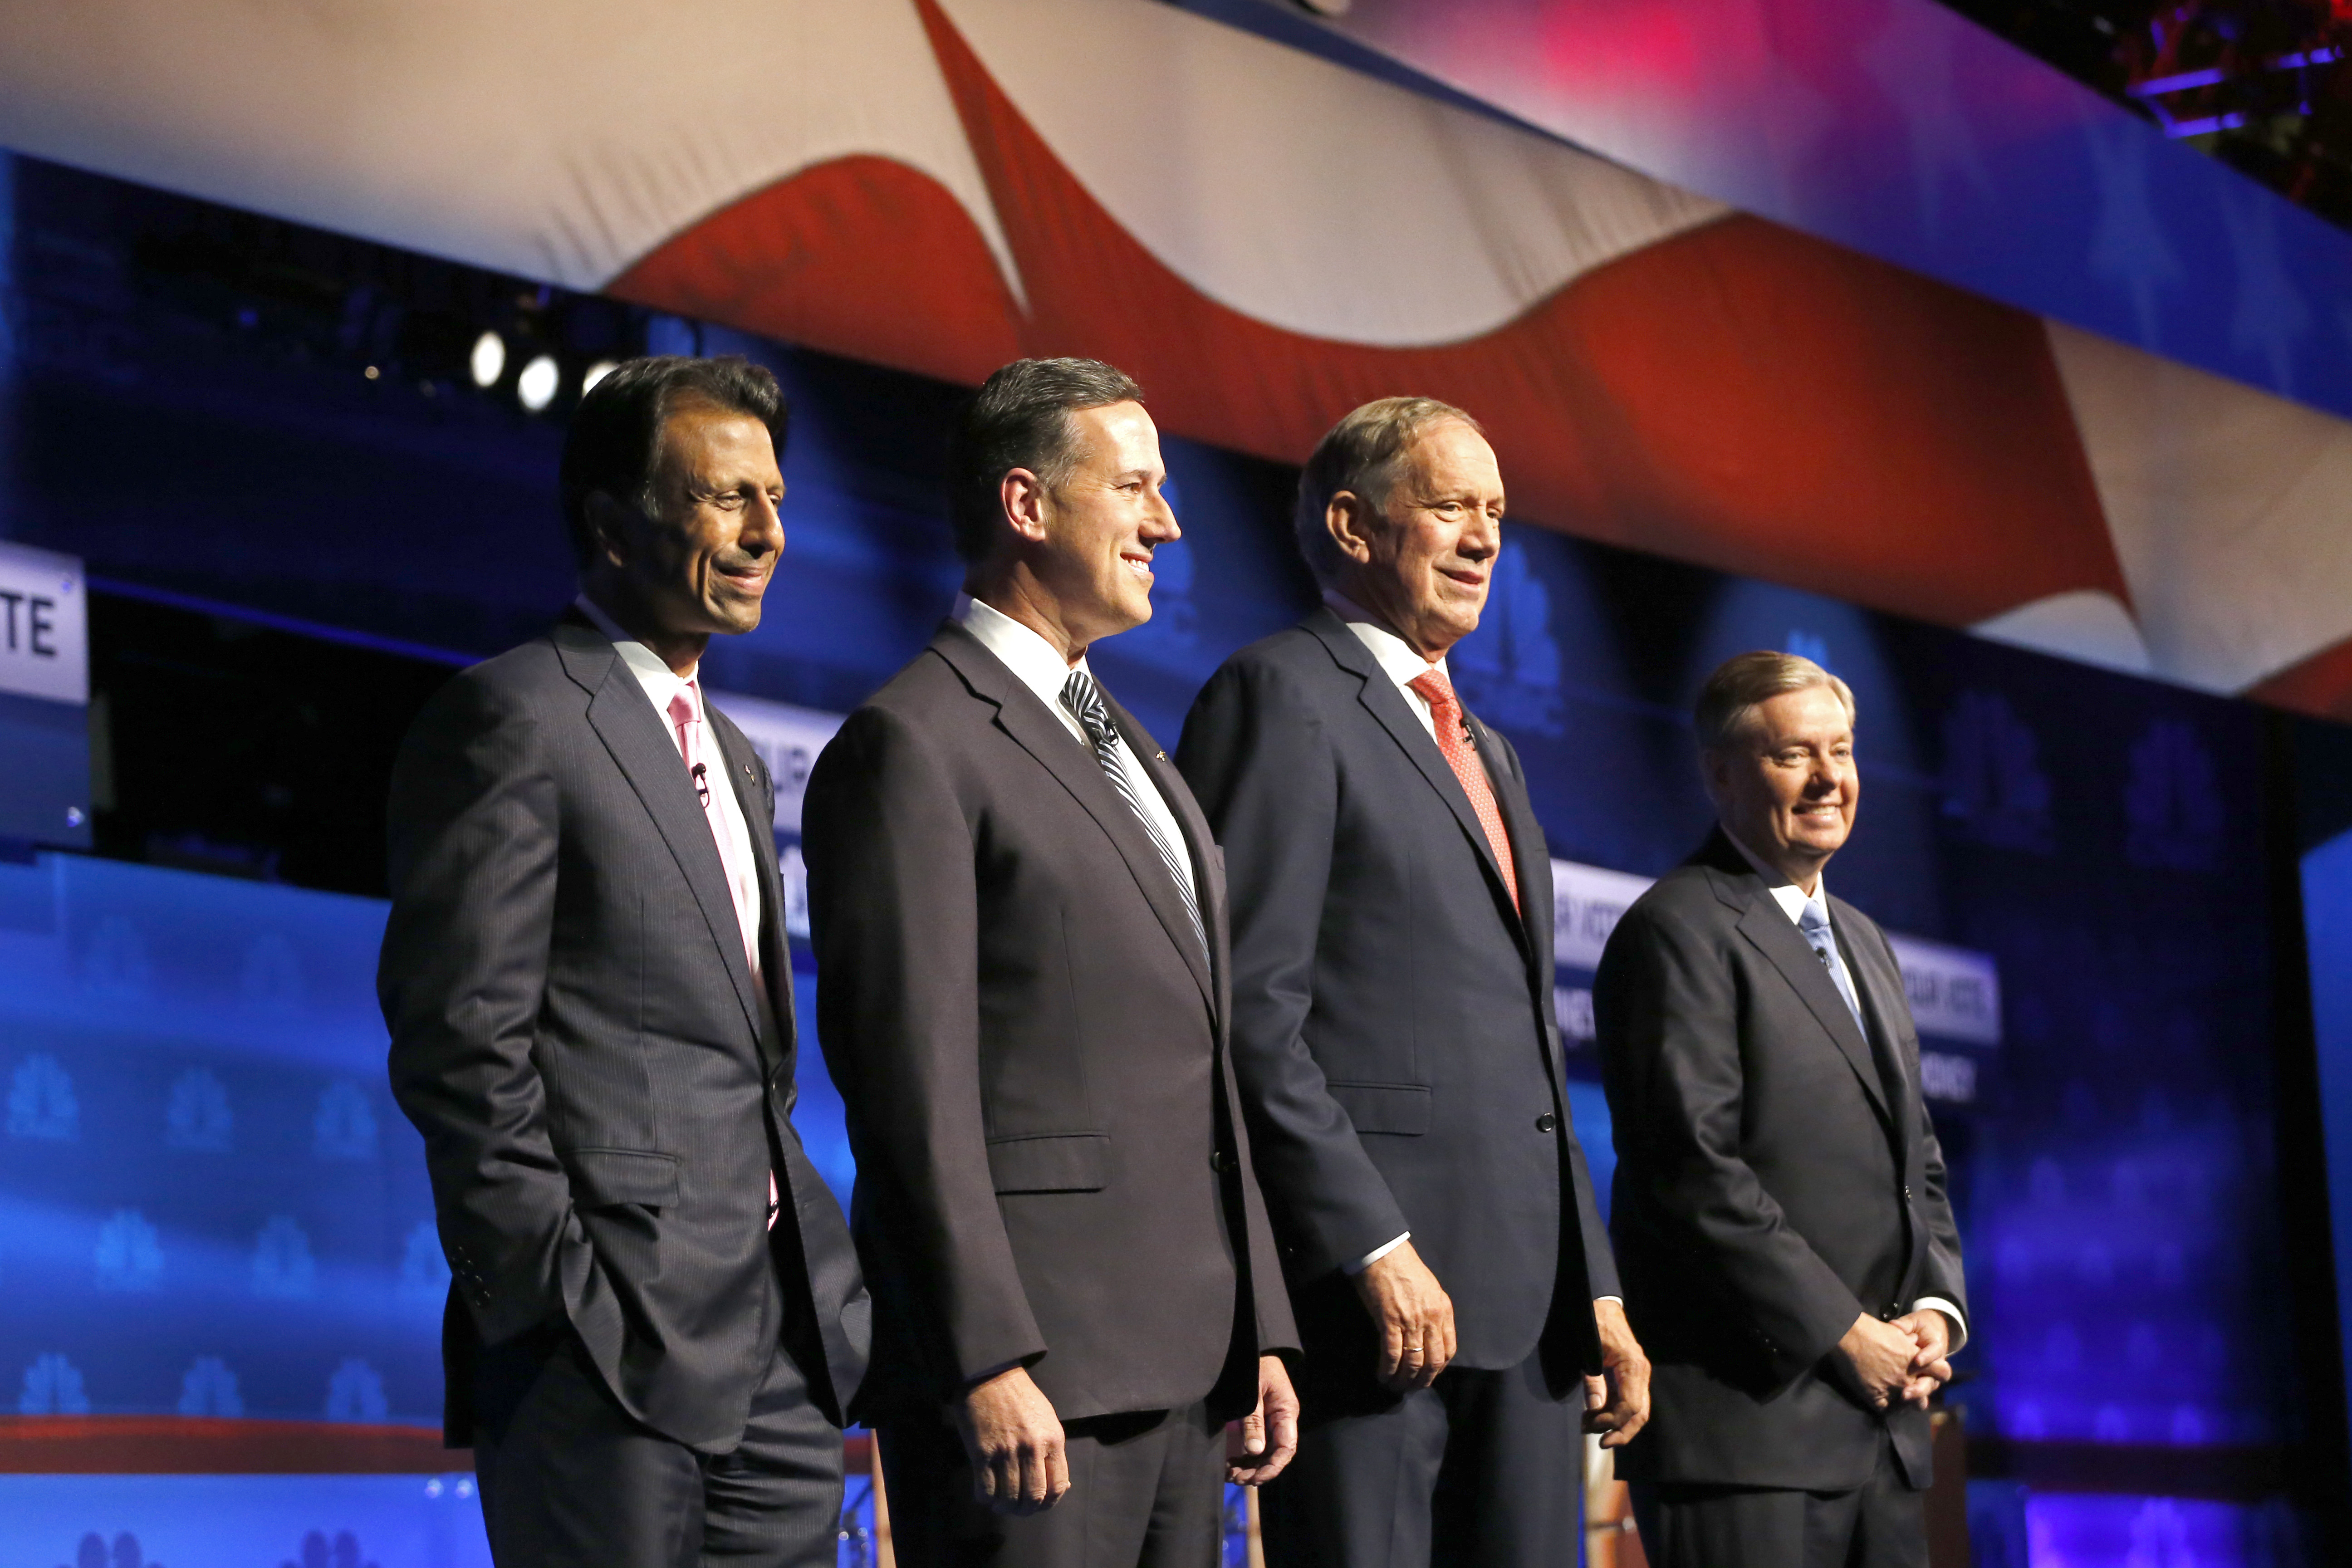 Republican presidential candidates, from left, Bobby Jindal, Rick Santorum, George Pataki, and Lindsey Graham take the stage during the CNBC Republican presidential debate at the University of Colorado, in Boulder, Colo., Oct. 28, 2015.